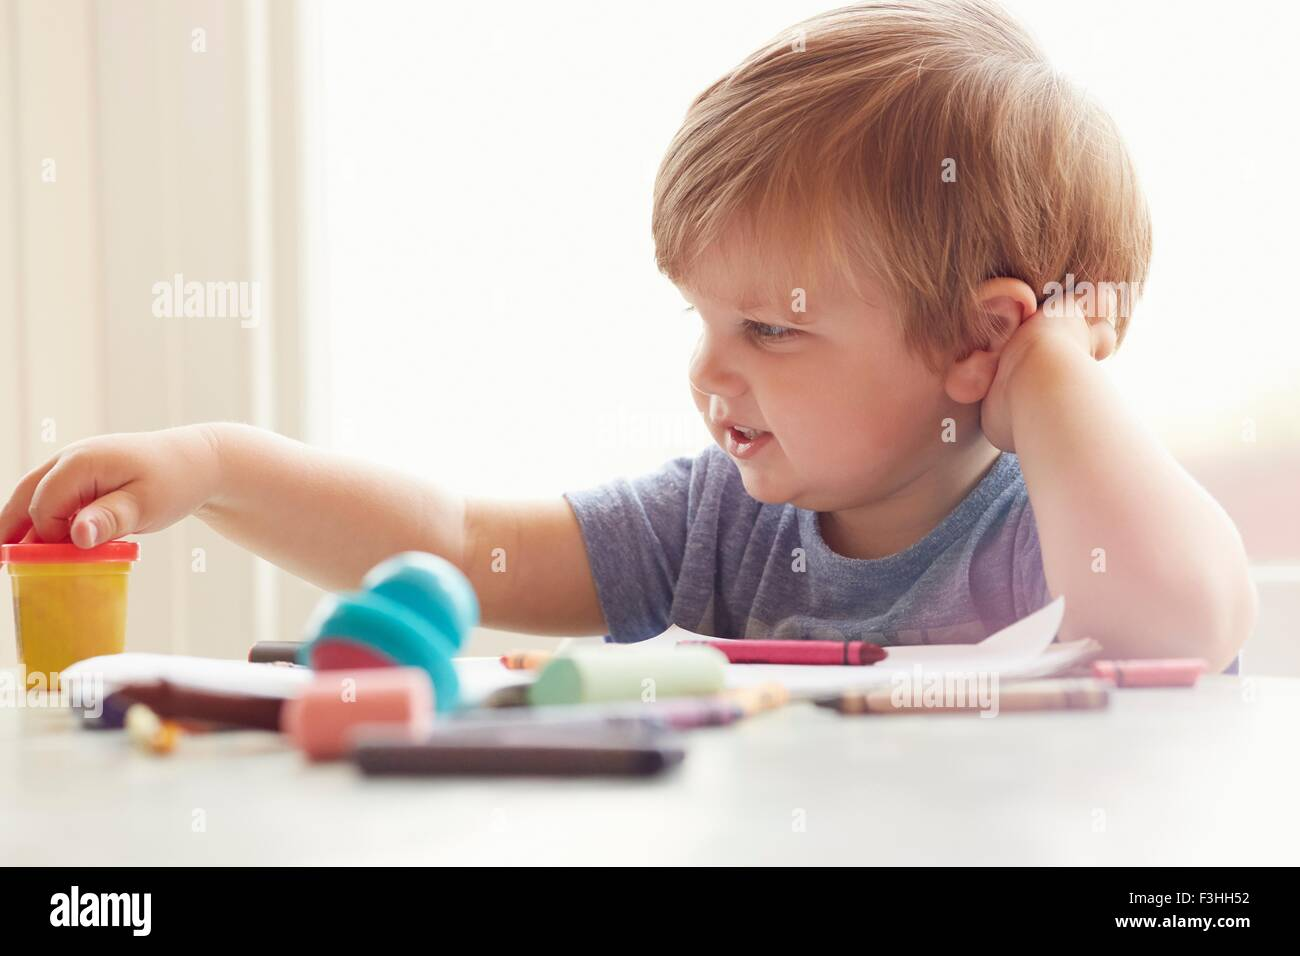 Boy sitting at table leaning on elbow looking at art supplies - Stock Image